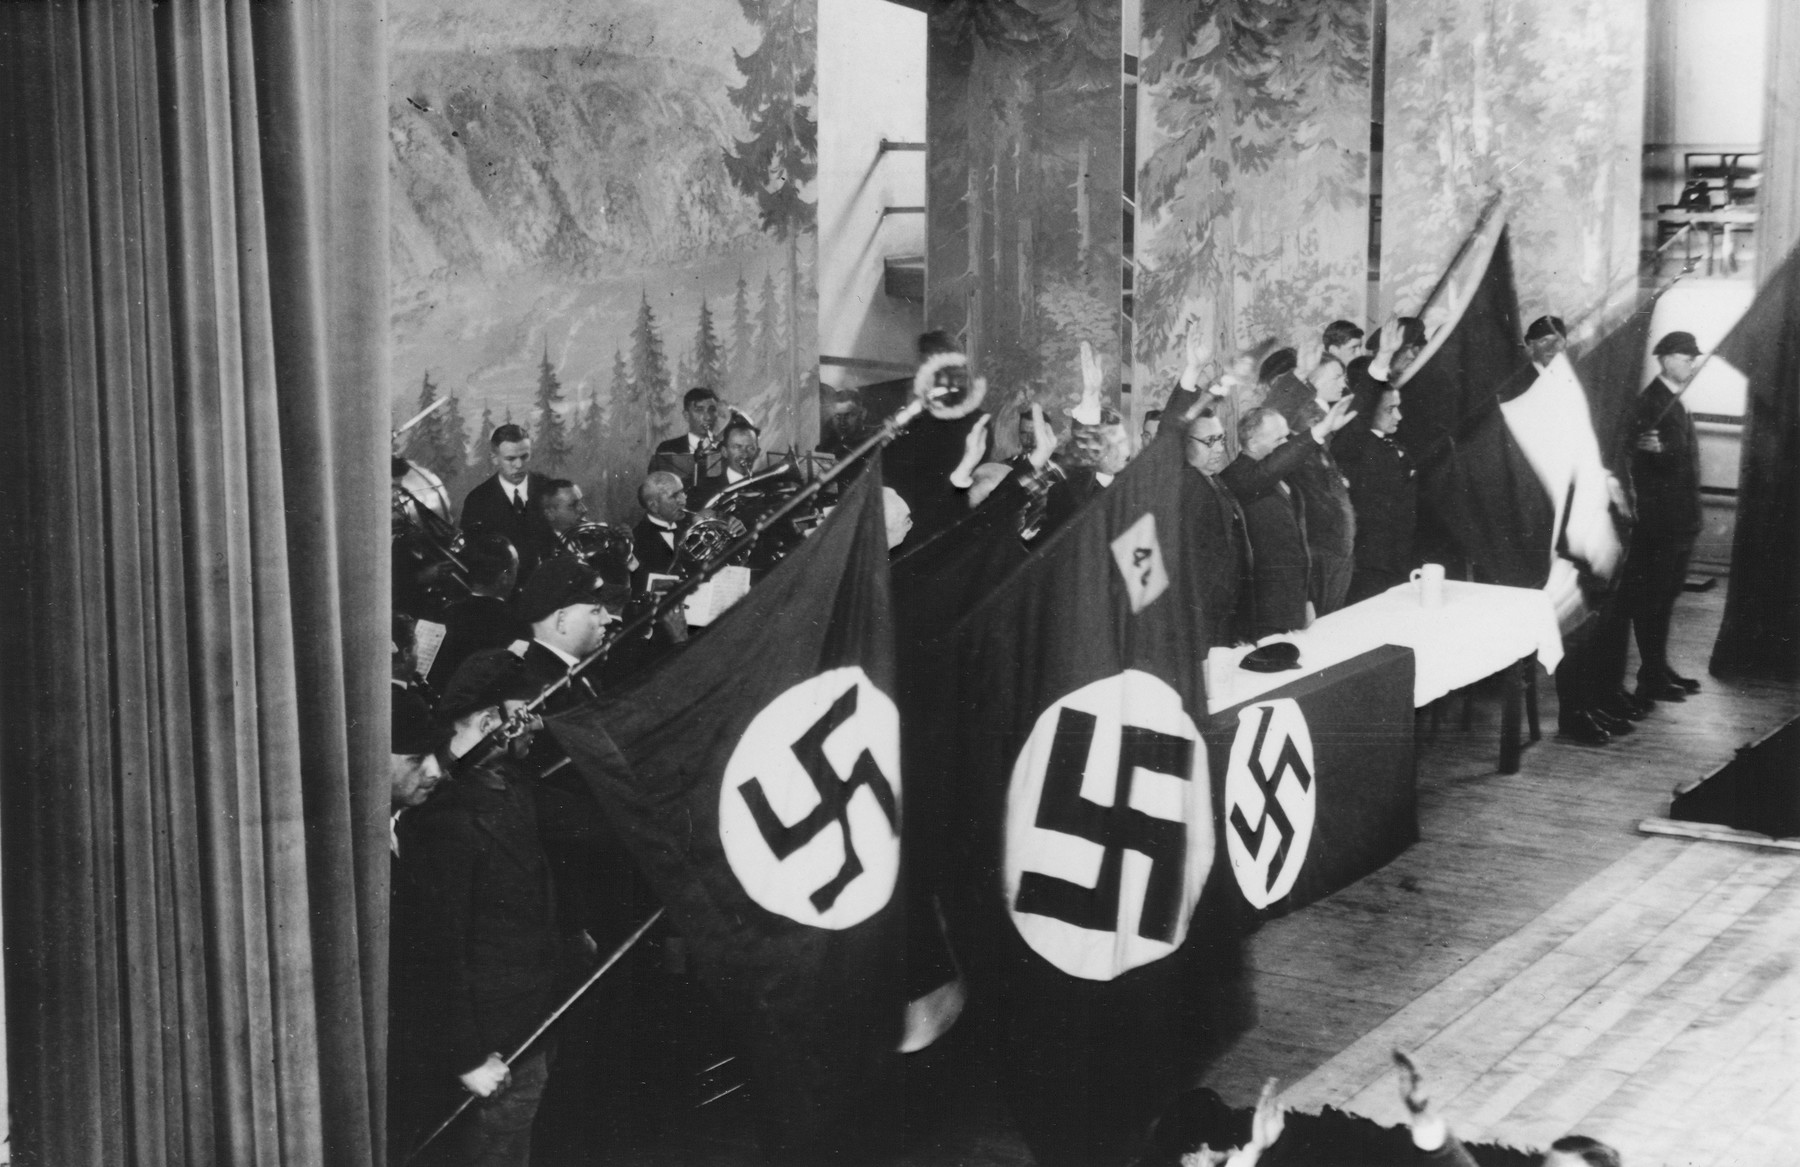 Nazi party officials give the Hitler salute at a gathering in the Stadthalle in Bad Blankenburg.  An orchestra performs behind the speakers' table.